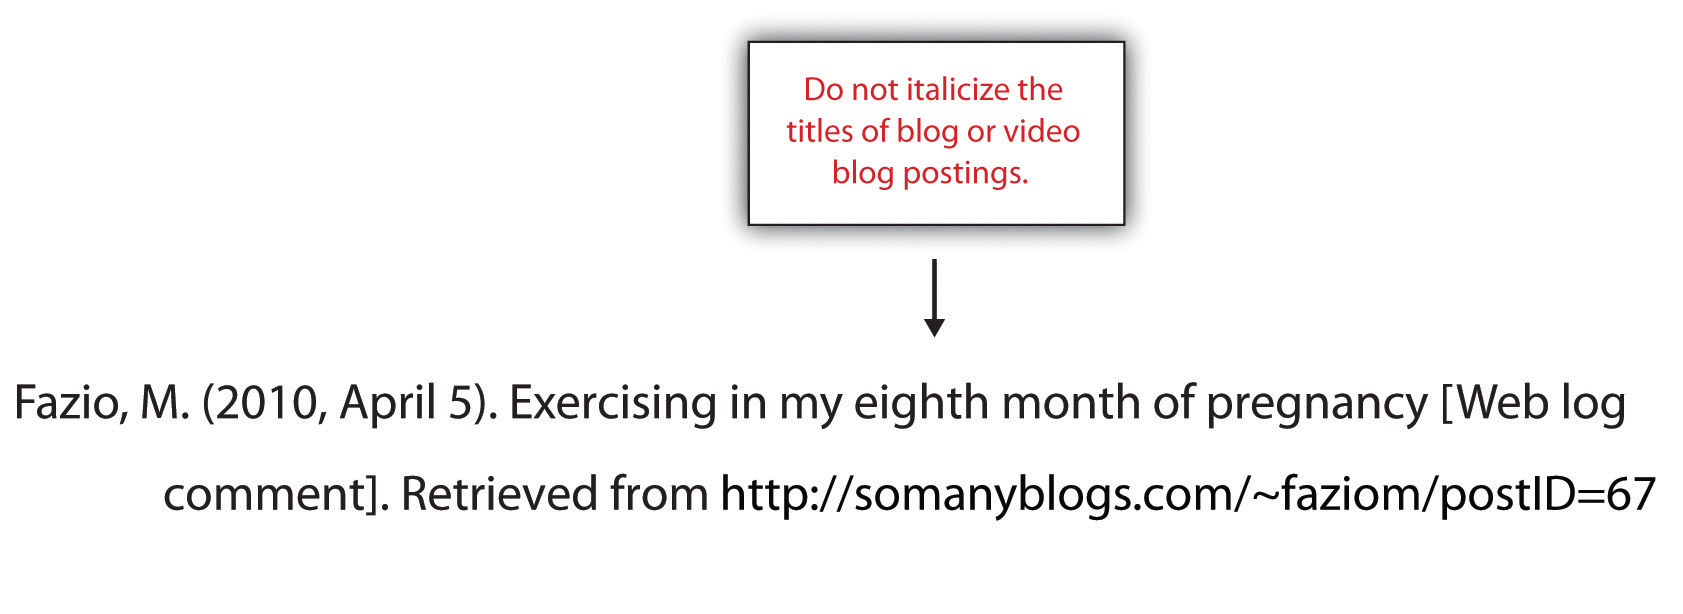 When creating a references section, do not italicize the titles of blog or video blog postings